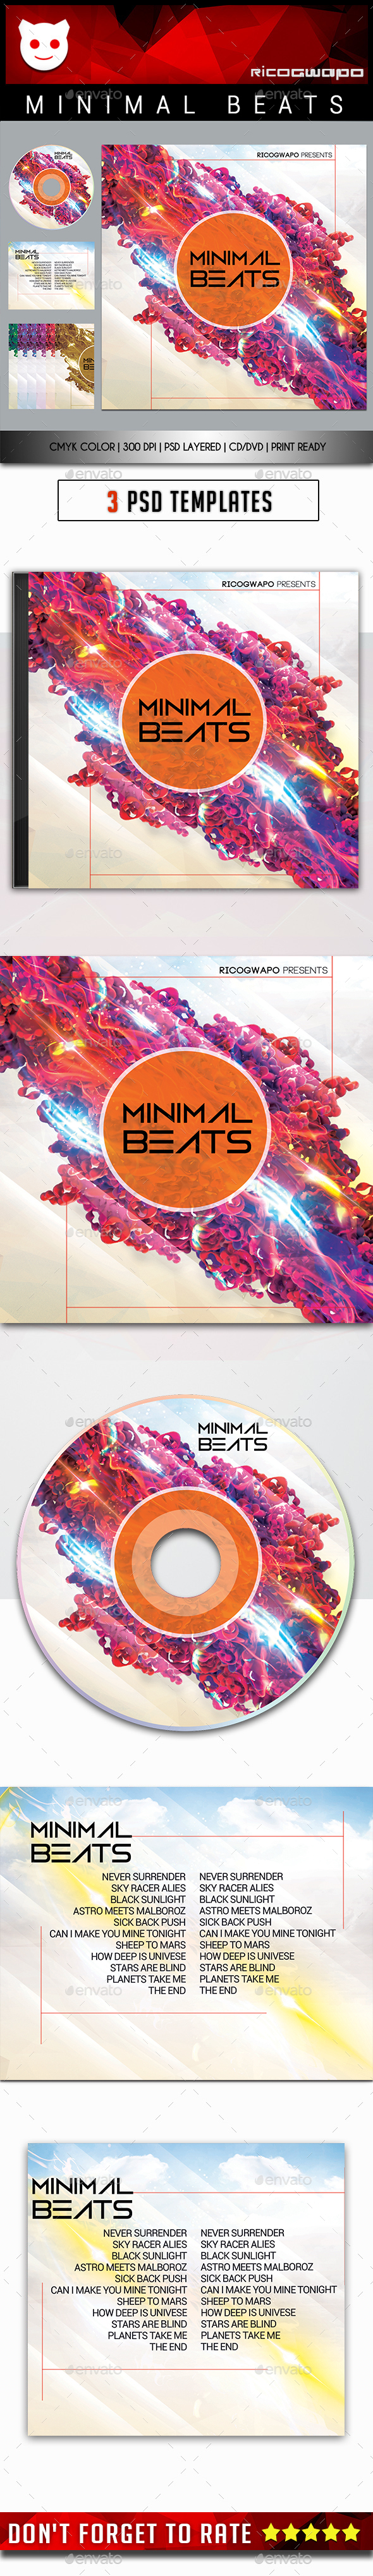 Minimal Beats Cd/DVD Template - CD & DVD Artwork Print Templates